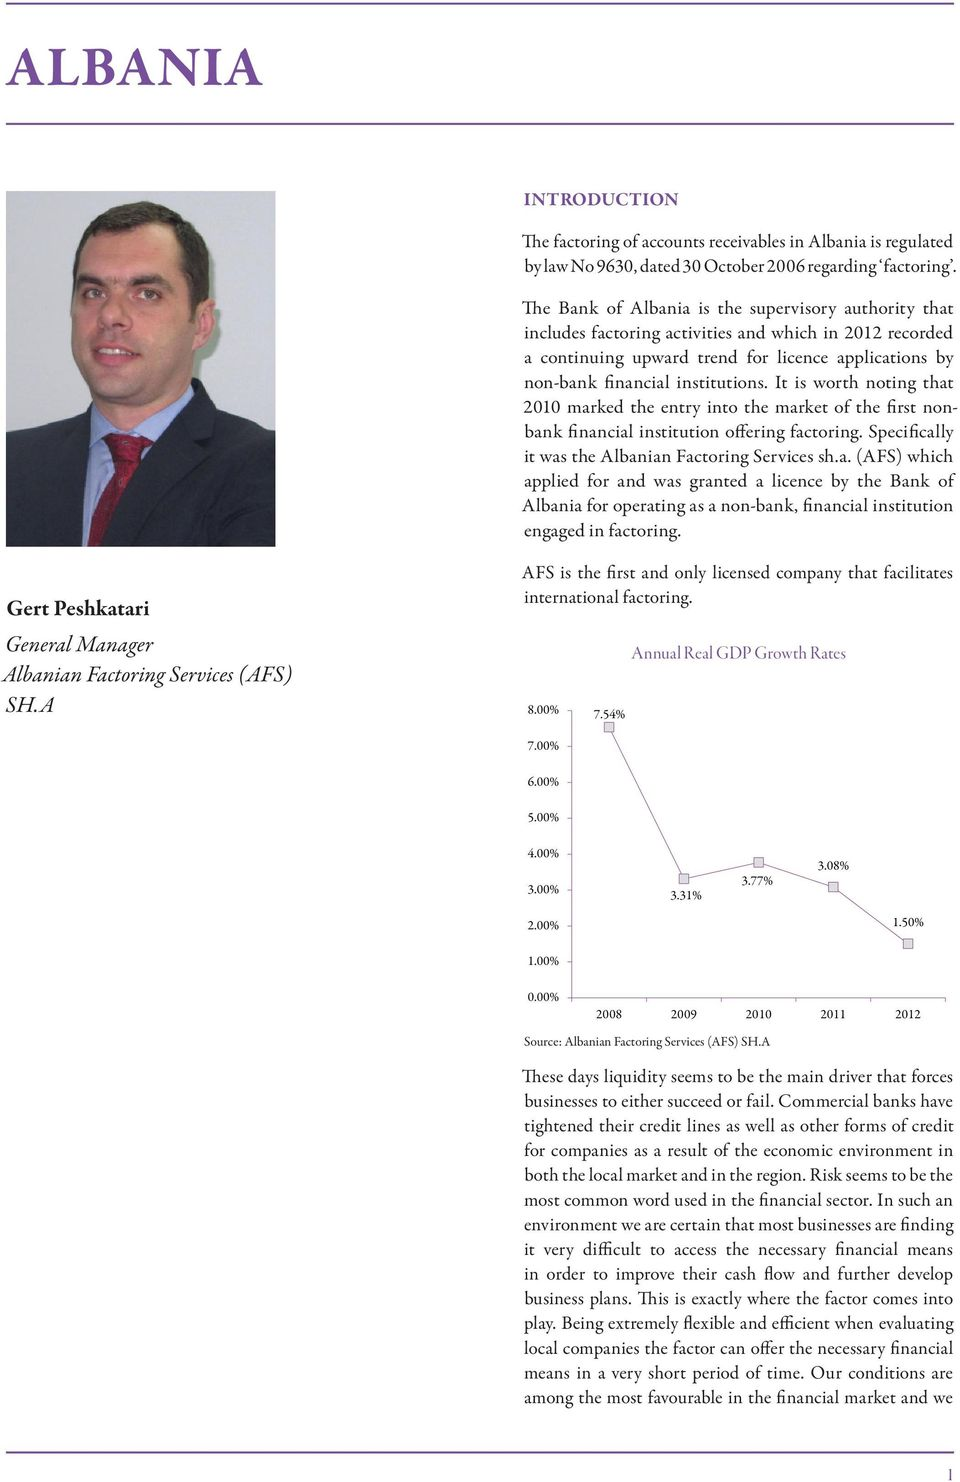 It is worth noting that 2010 marked the entry into the market of the first nonbank financial institution offering factoring. Specifically it was the Albanian Factoring Services sh.a. (AFS) which applied for and was granted a licence by the Bank of Albania for operating as a non-bank, financial institution engaged in factoring.